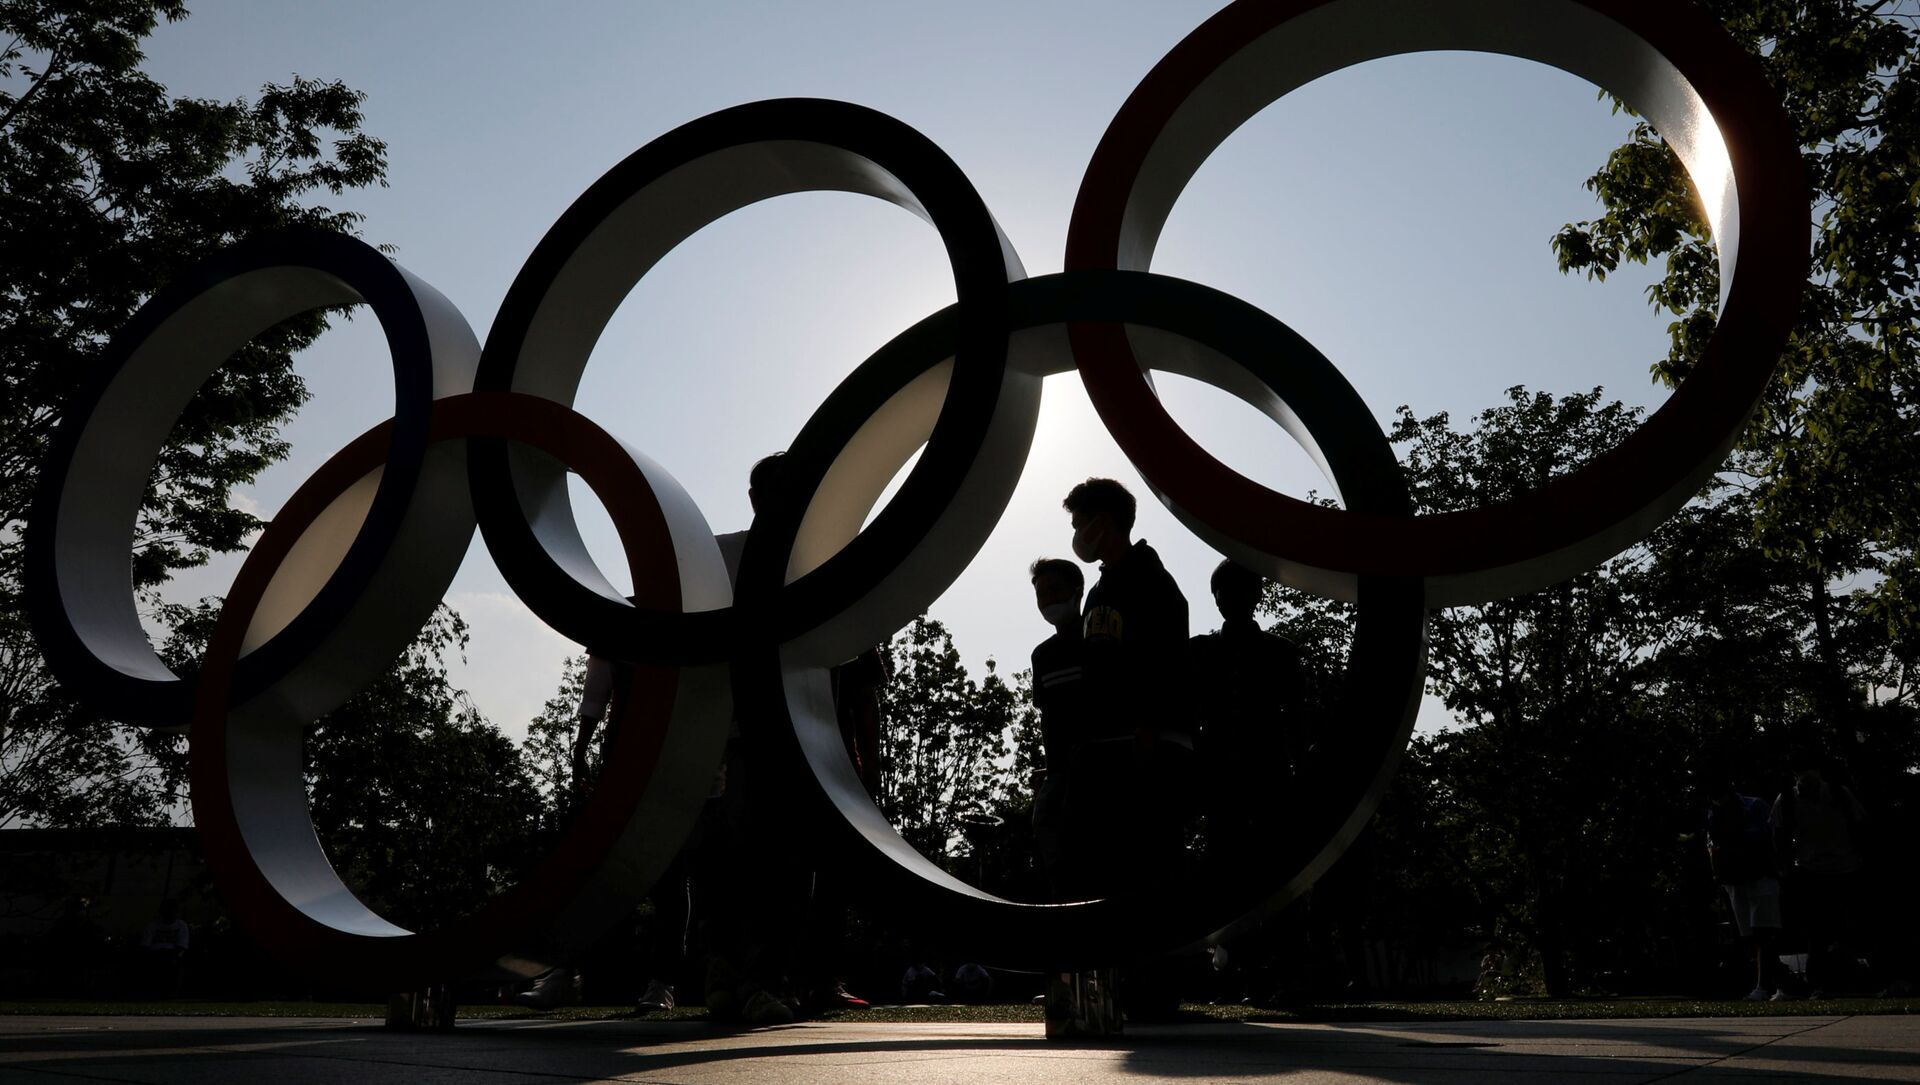 Visitors and the Olympic Rings monument are silhouetted outside the Japan Olympic Committee (JOC) headquarters near the National Stadium - Sputnik International, 1920, 23.07.2021